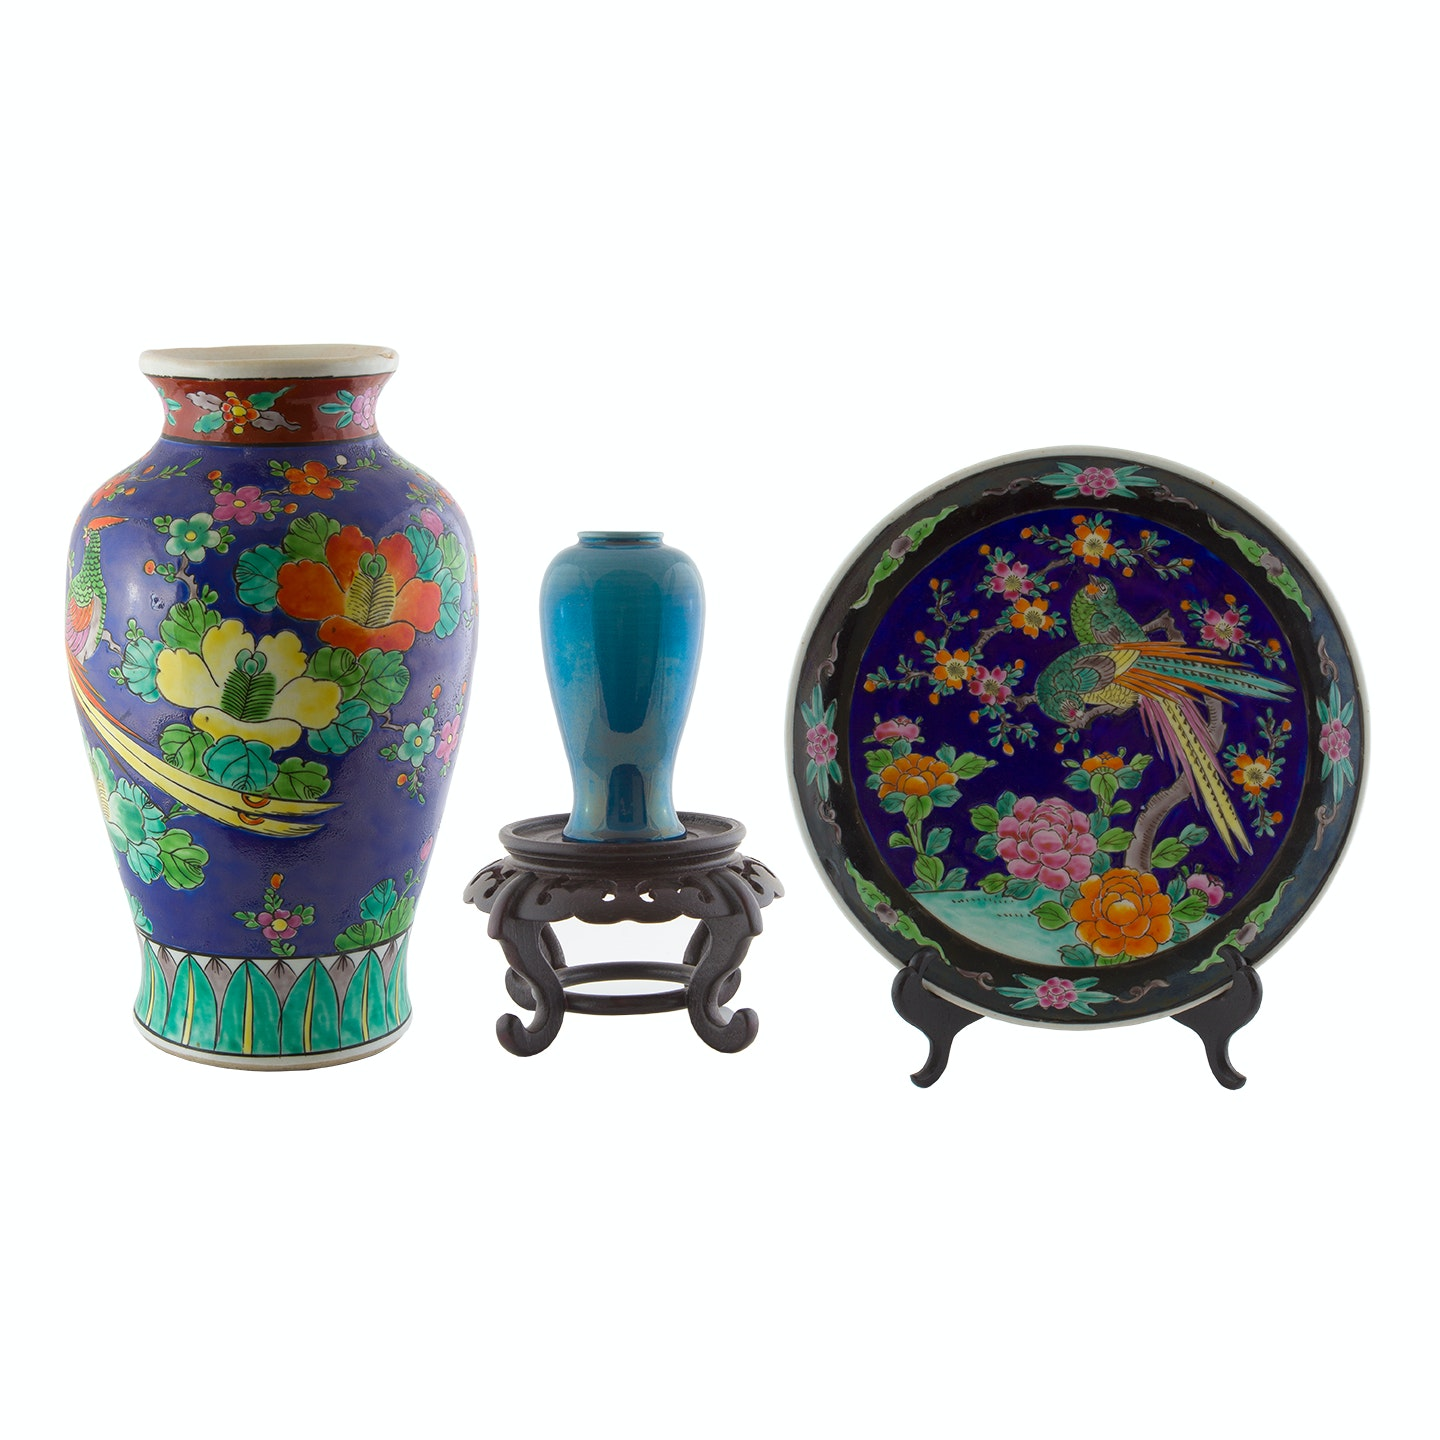 1930s Japanese Hand-Painted Vase and Display Plate